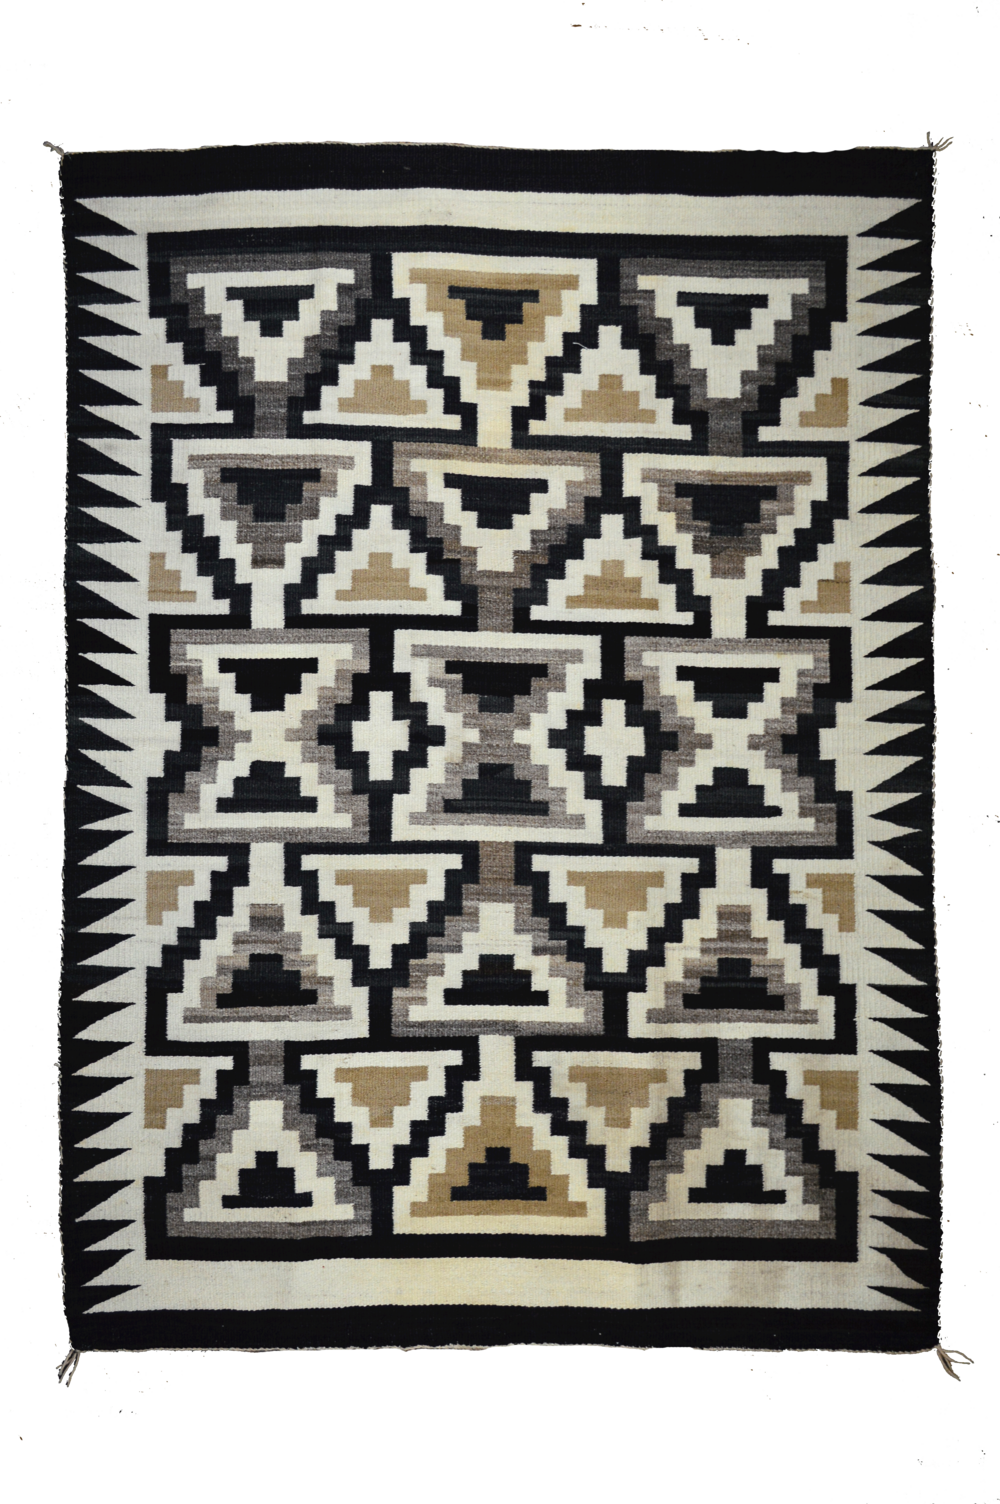 "Old Crystal Trading Post Style Navajo Floor Rug   Handspun Natural Wools - c.1910  60"" x 45"" // BV0438"